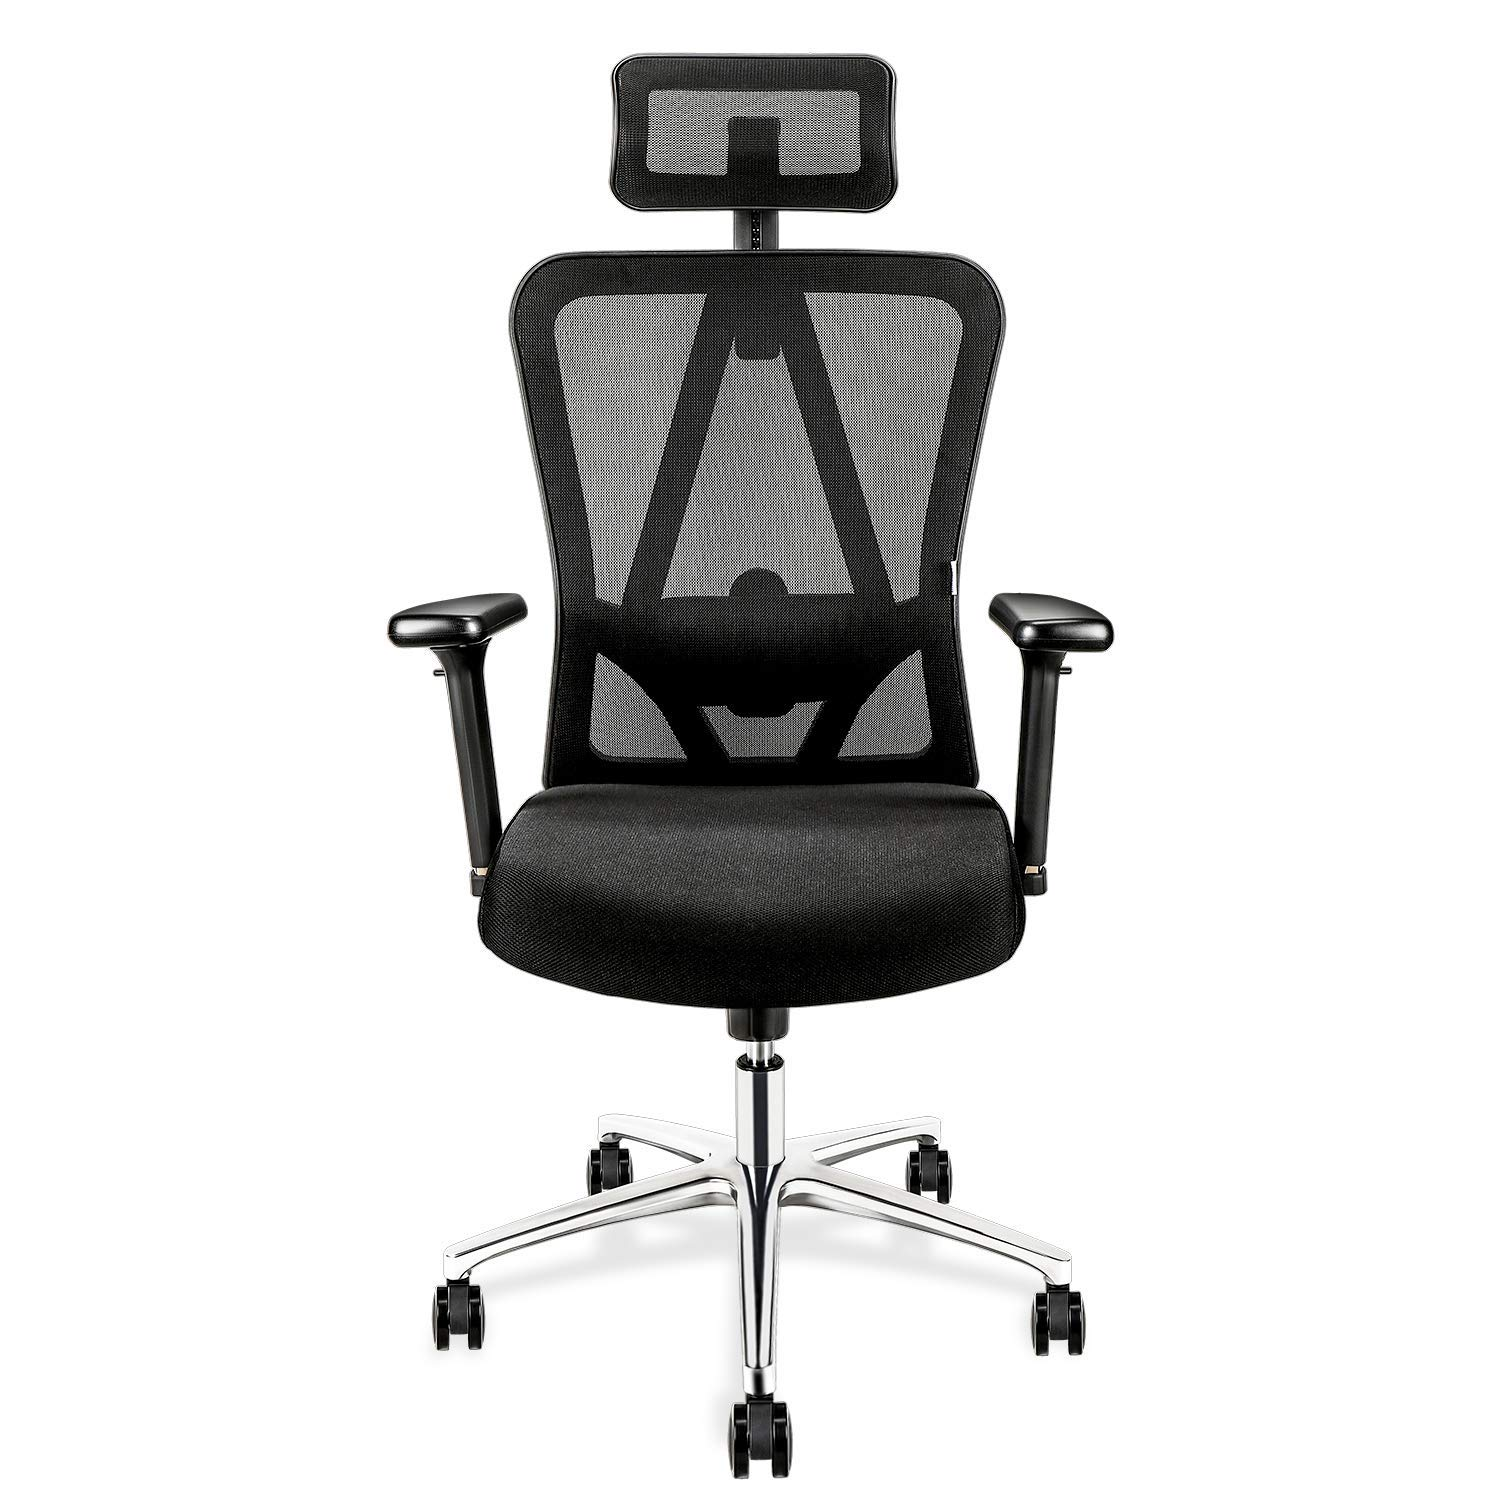 TOPVORK High Back Mesh Office Chair Ergonomic Chair, Desk Chair with Adjustable Headrest Armrest and Lumbar Support, Better Spine Protection for Sedentary People